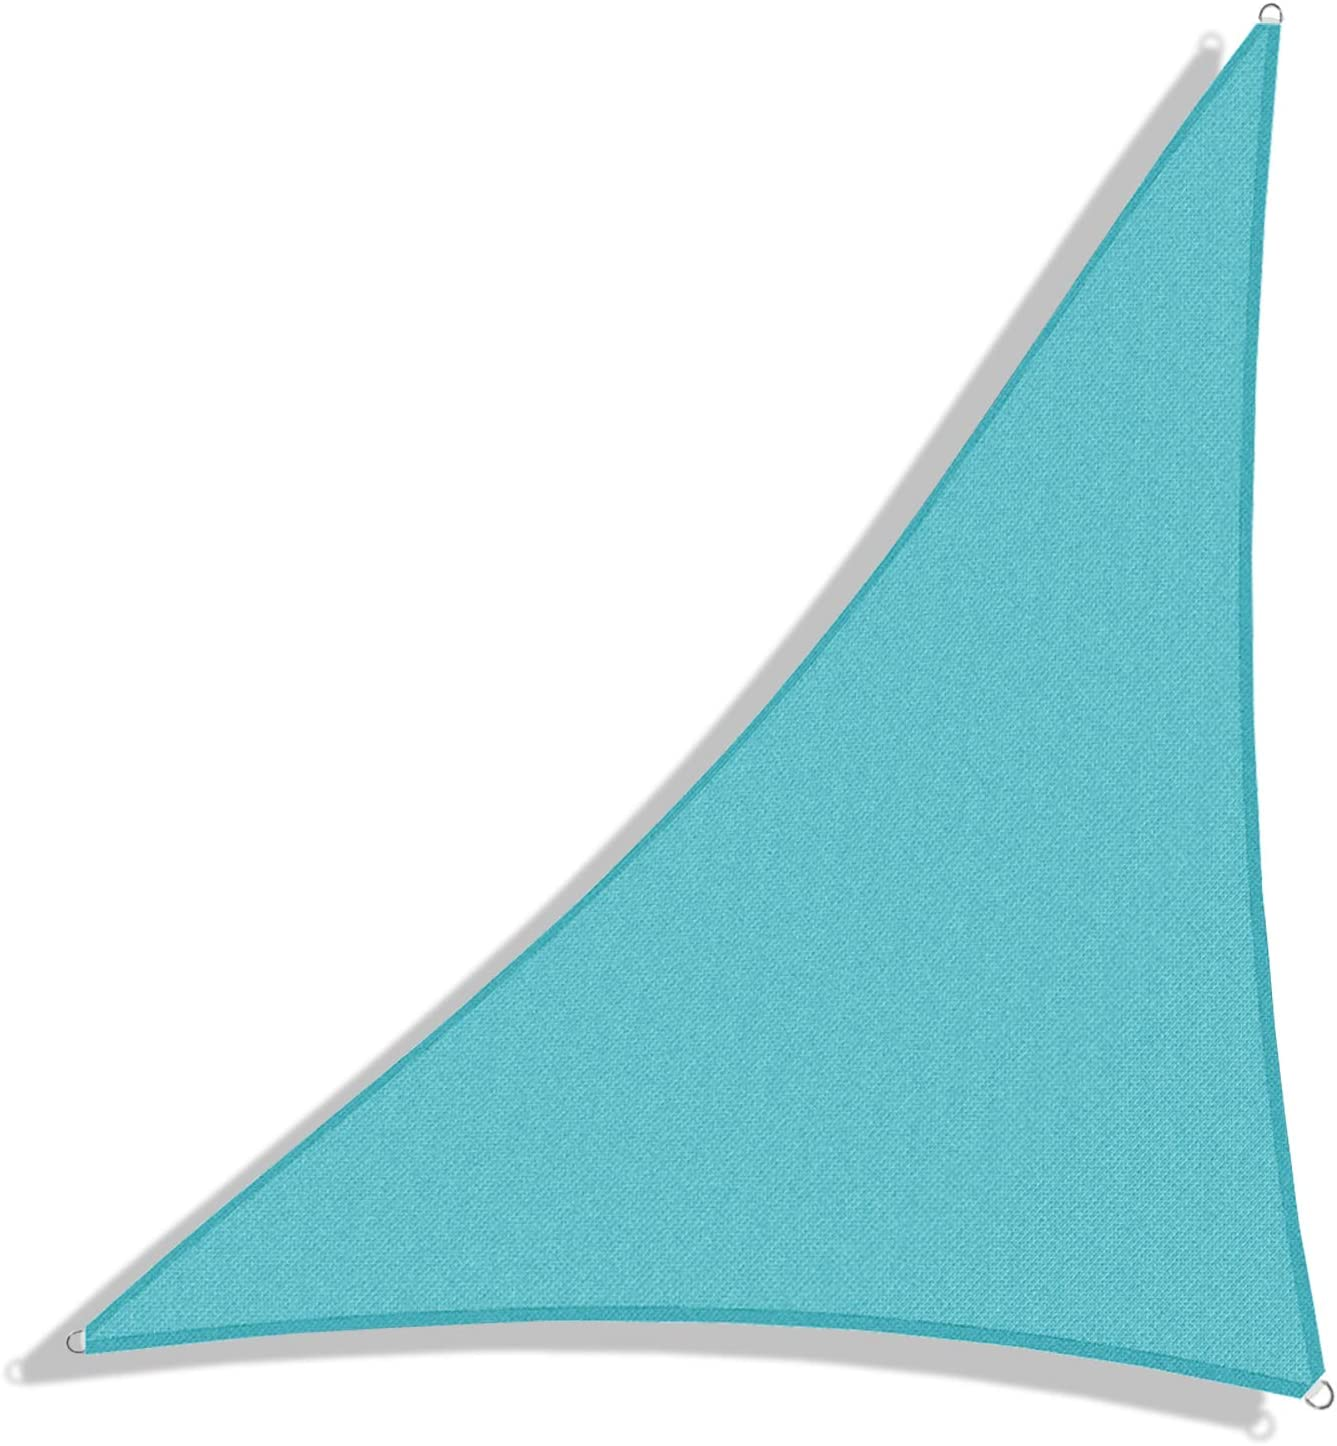 Windscreen4less 8' x 8' x 11.3' Sun Shade Sail Triangle Canopy in Turquoise with Commercial Grade Customized